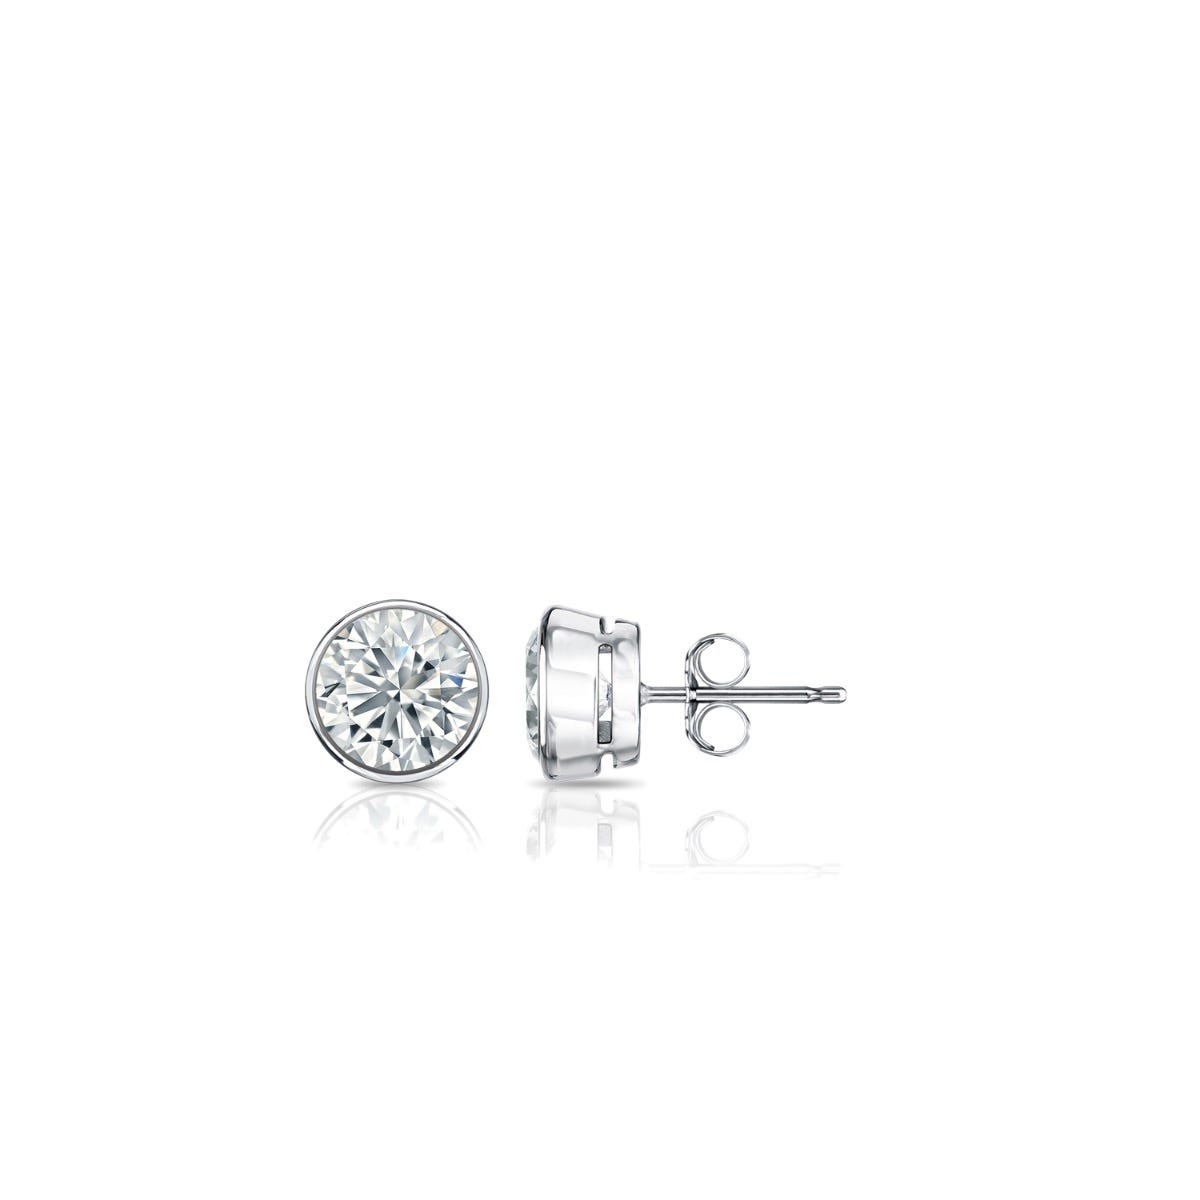 Diamond Round Bezel-Set 1/5ctw. Solitaire Stud (IJ-SI1) Earrings in Platinum